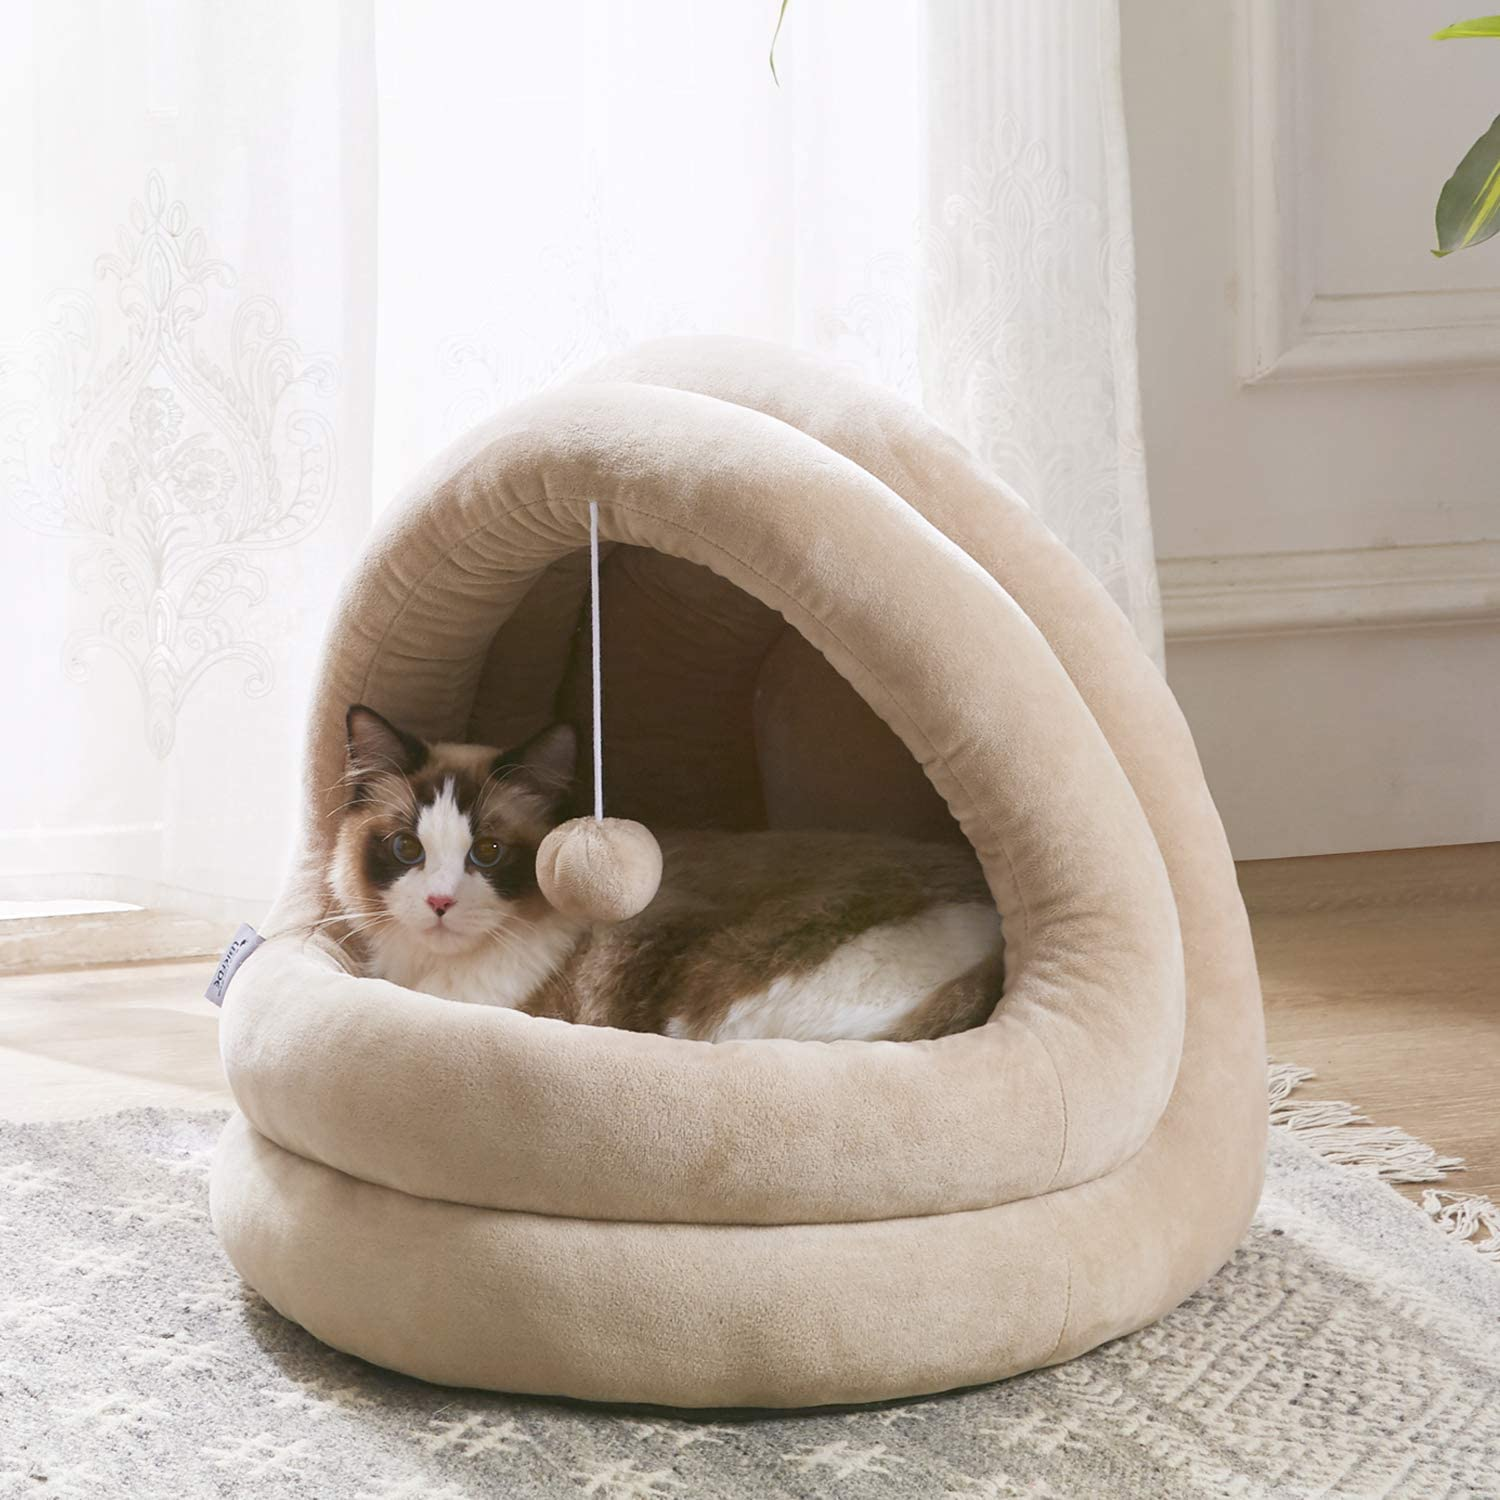 Free Amazon Promo Code 2020 for Cat Bed for Indoor Cats Large